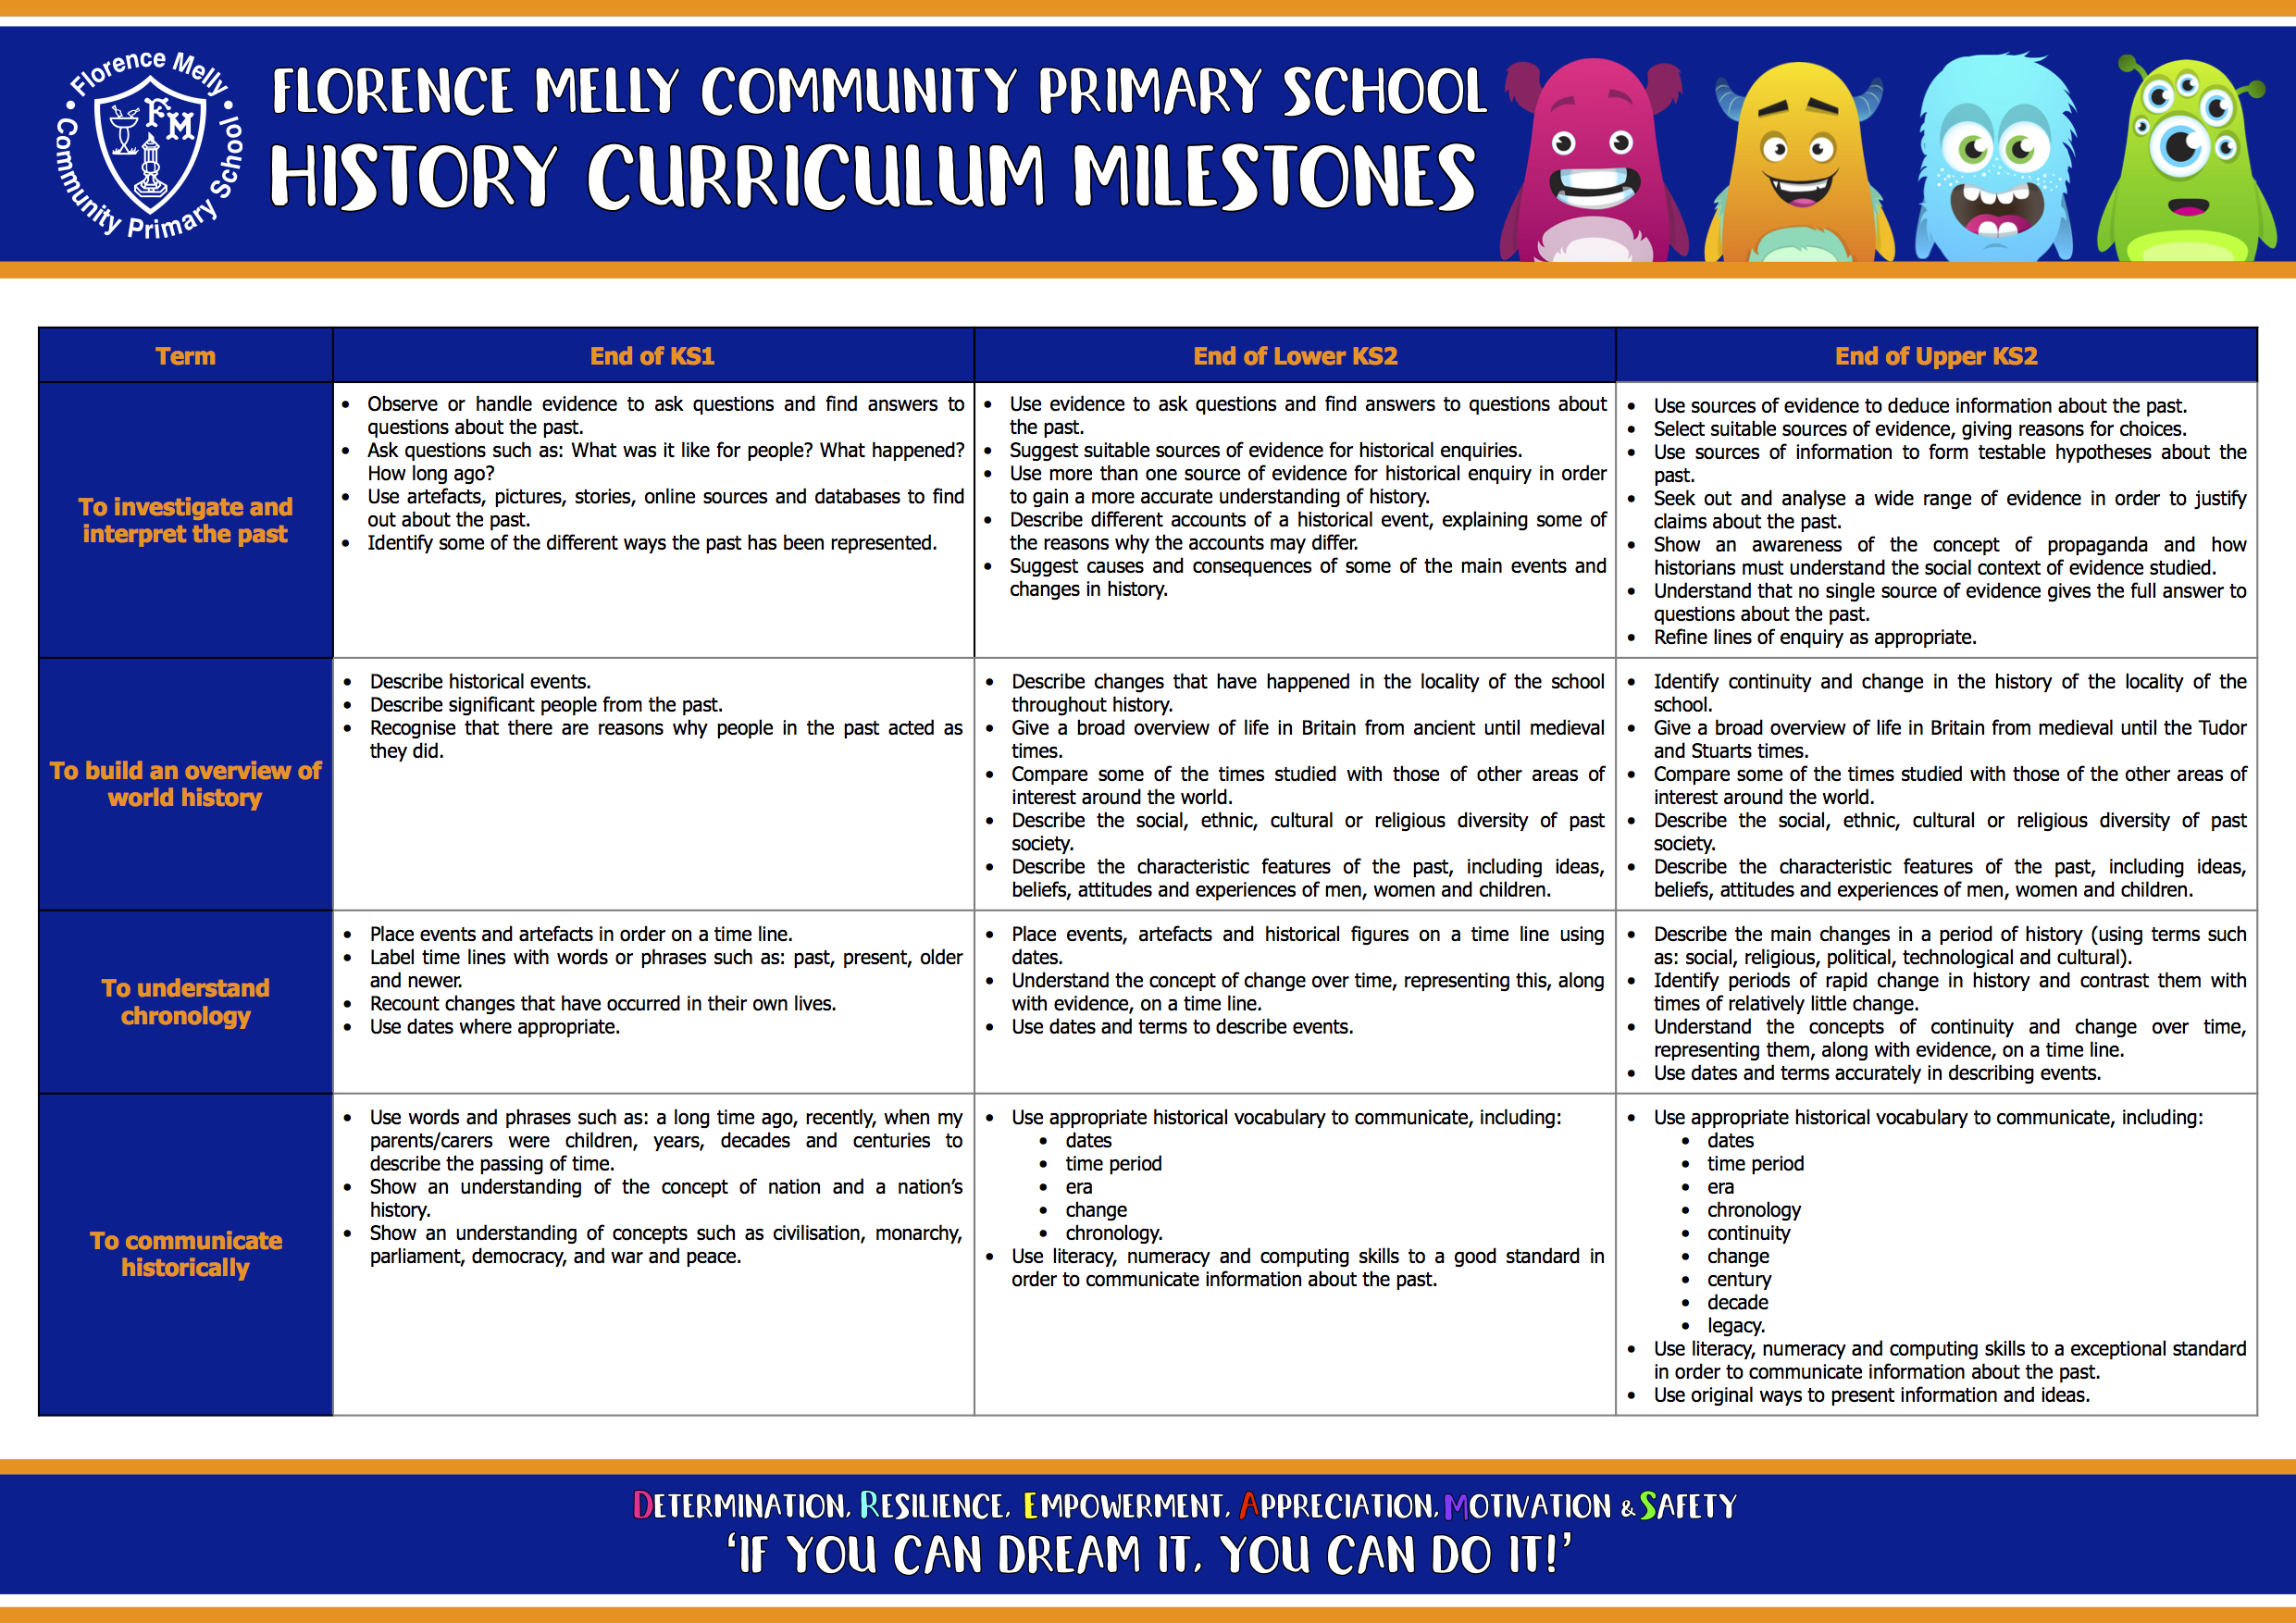 History Curriculum Map (3) - Florence Melly Community Primary School